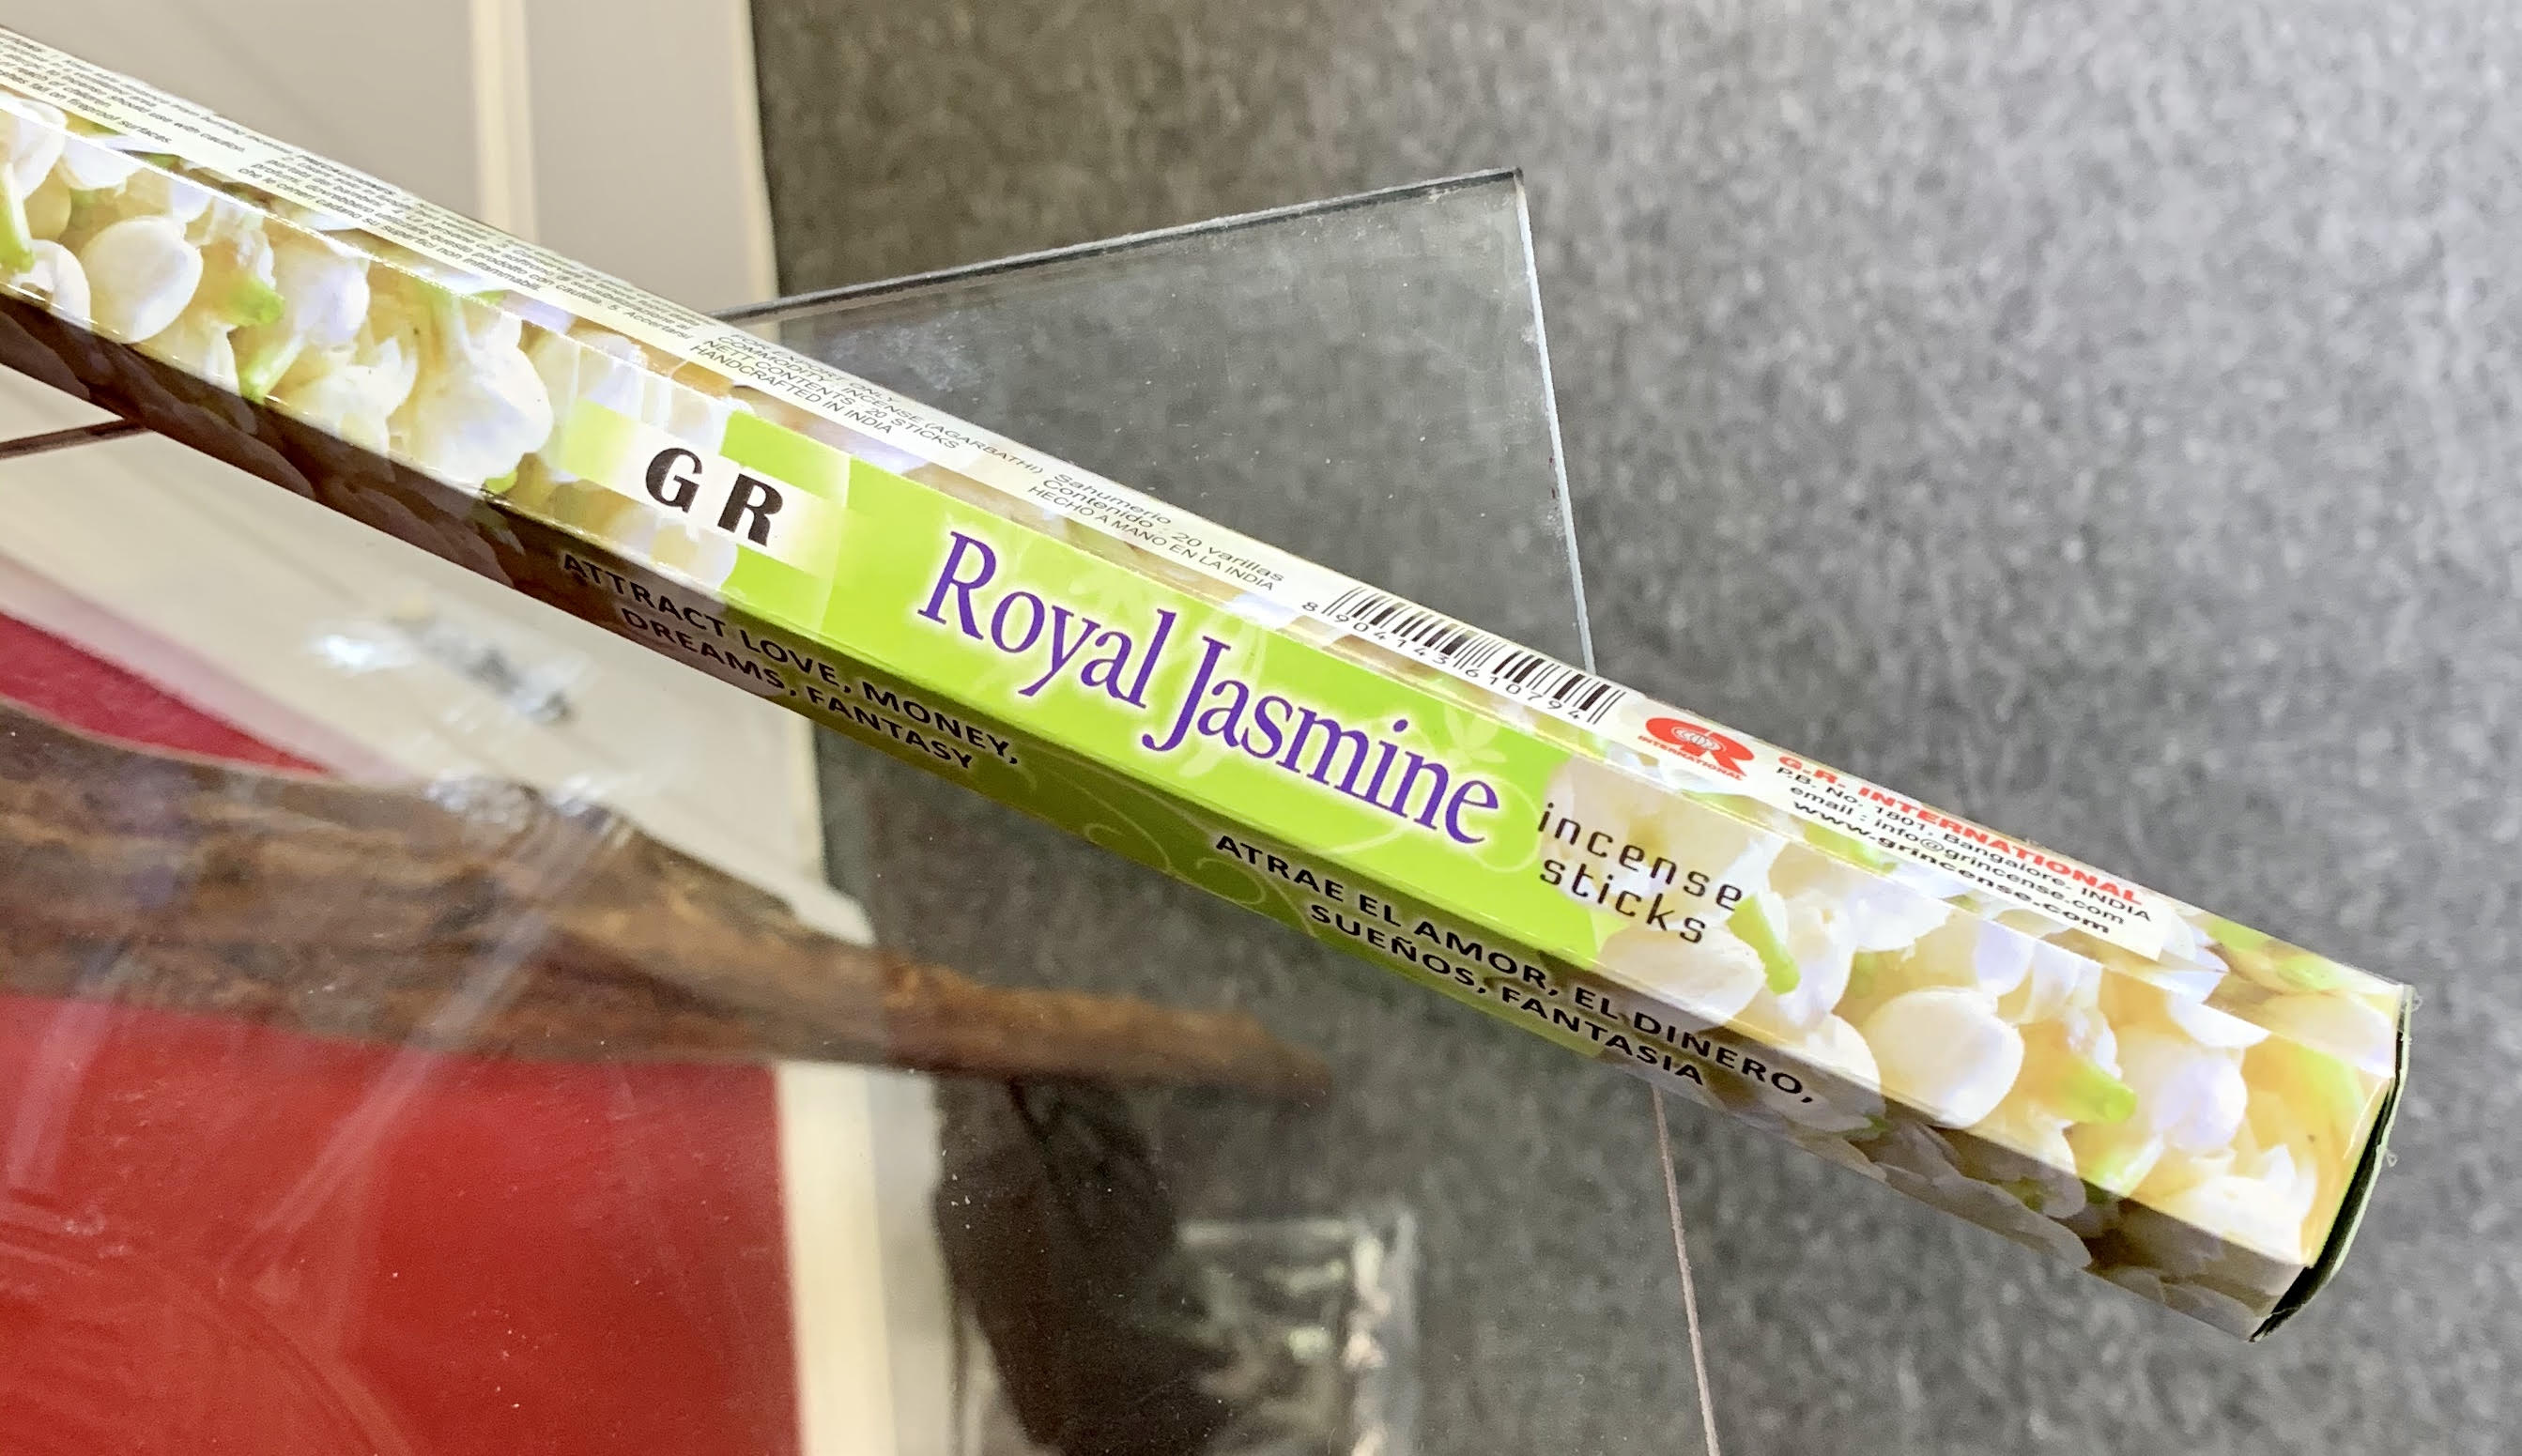 Royal Jasmin Incense by GR